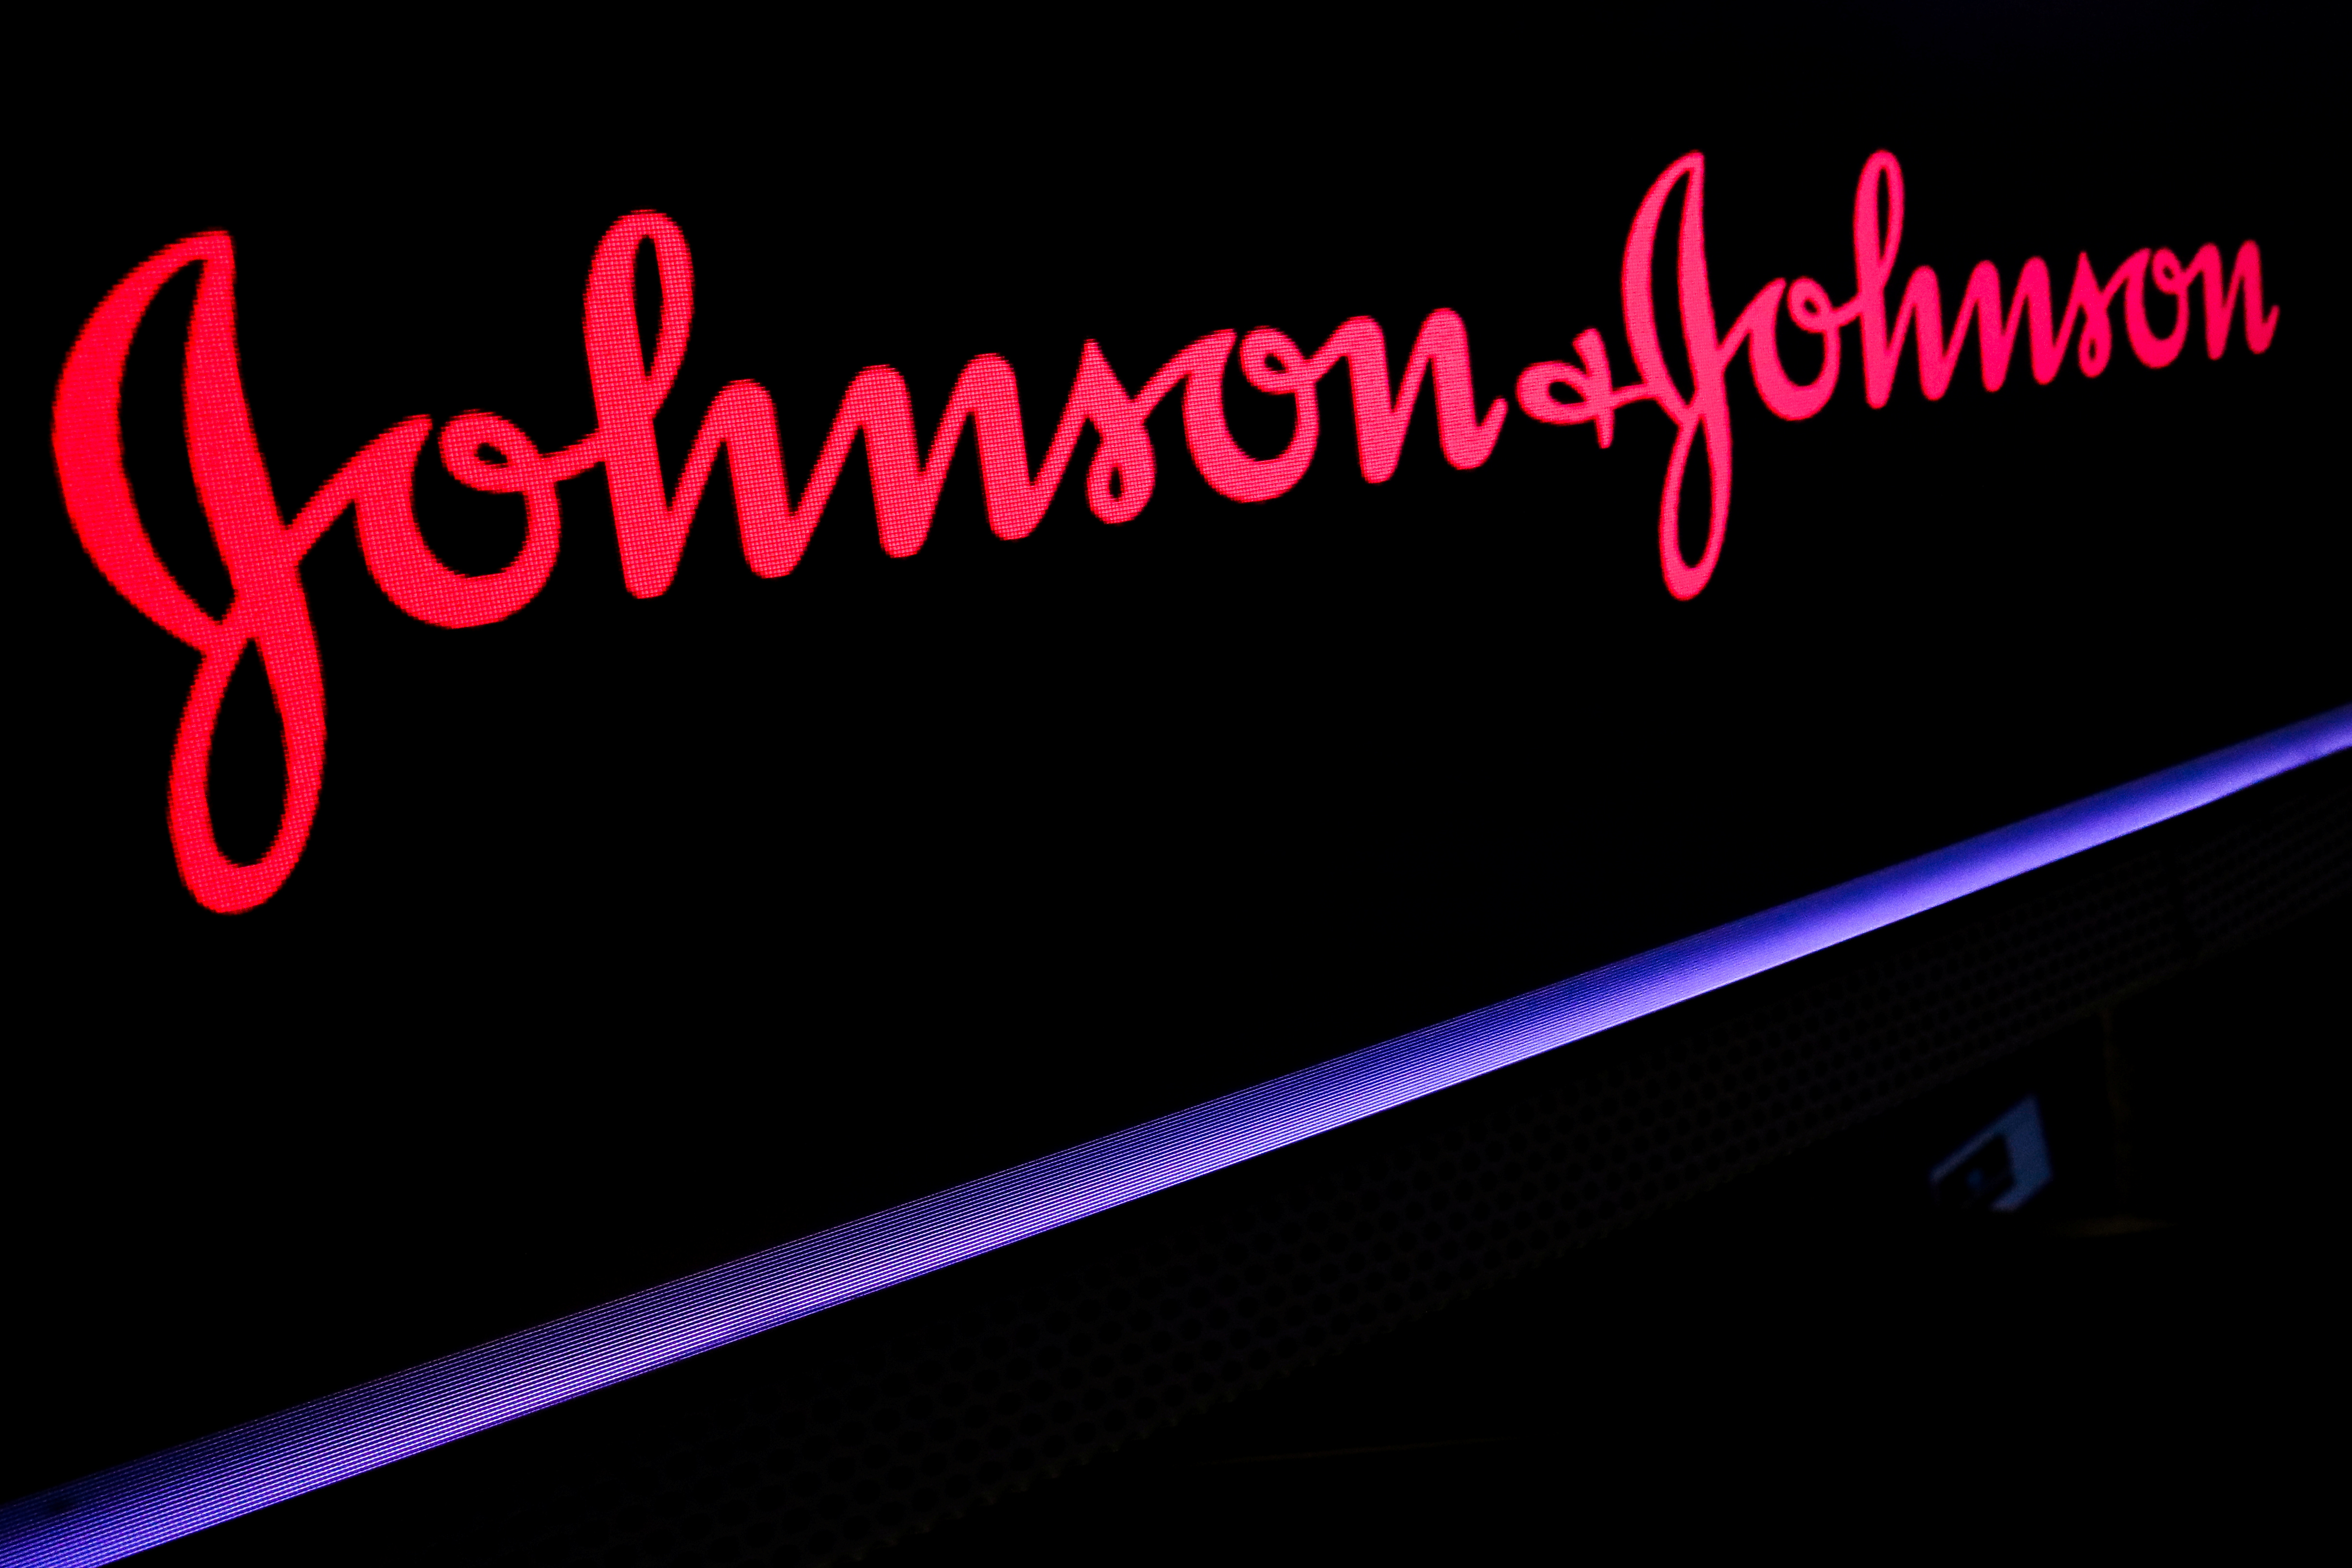 The Johnson & Johnson logo is displayed on a screen on the floor of the New York Stock Exchange (NYSE) in New York, U.S., May 29, 2019. REUTERS/Brendan McDermid